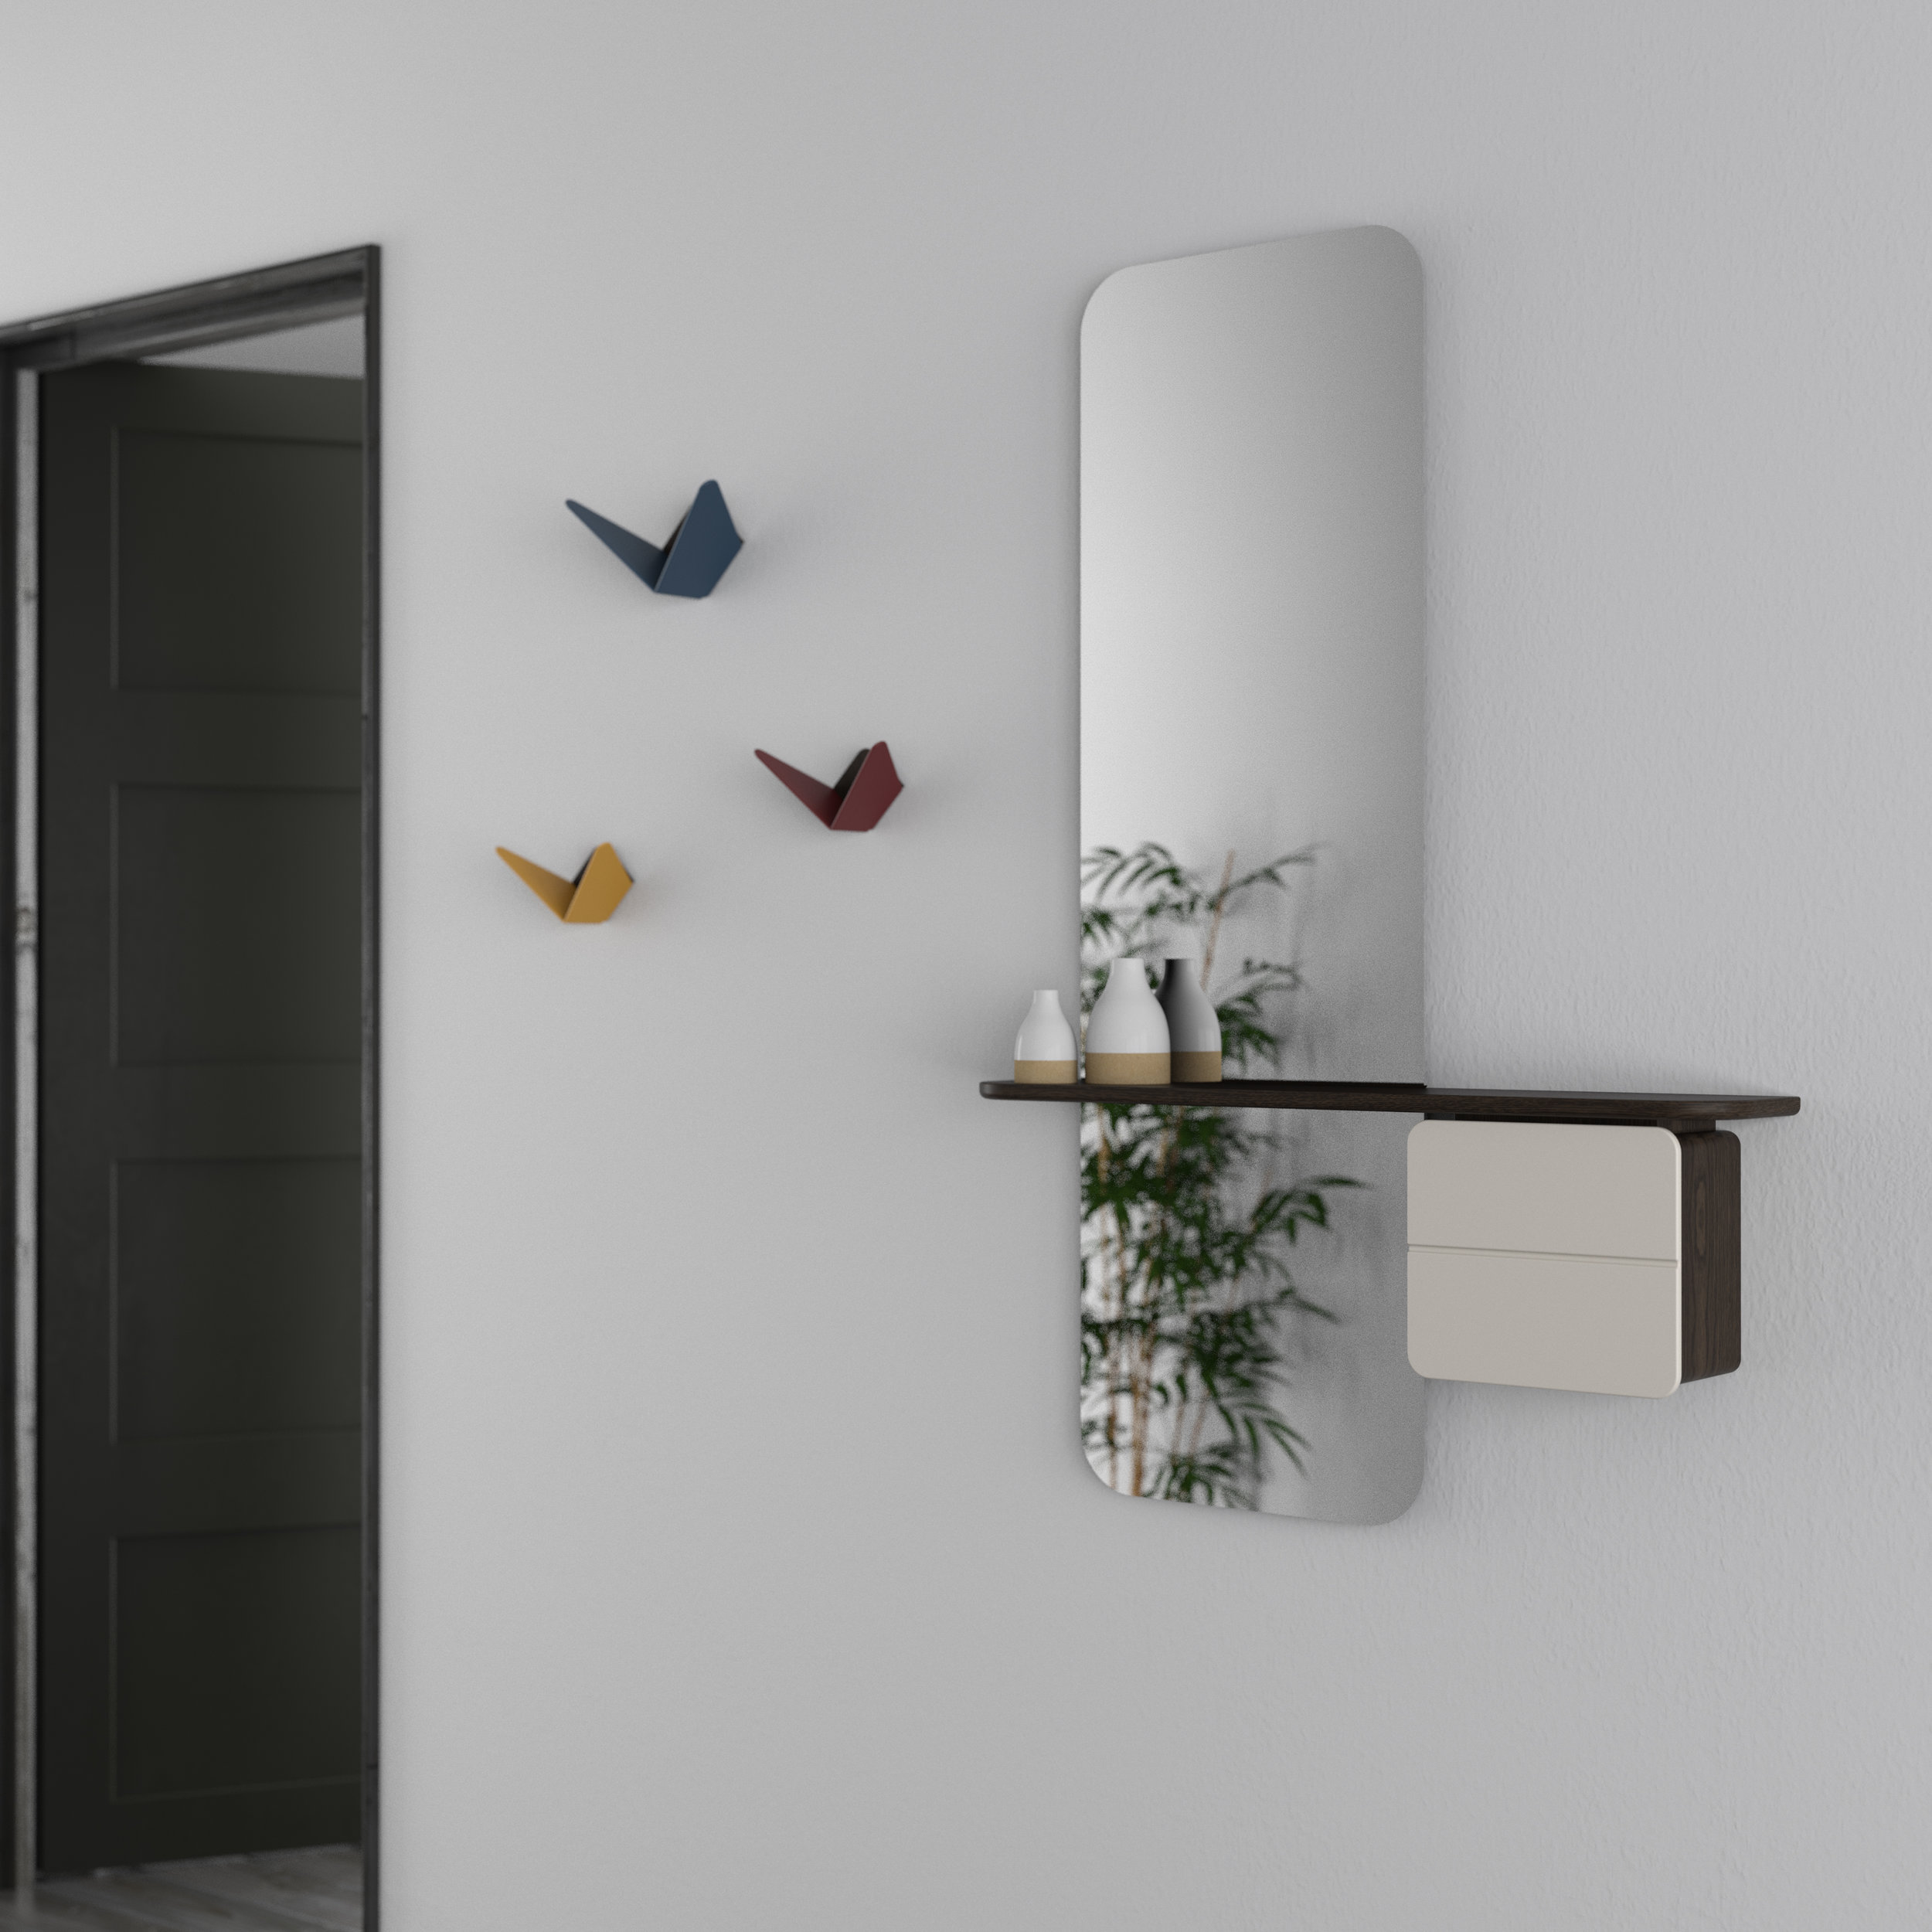 Top, 'Lean On Me' storage rail, below, 'One More Look' mirror and shelf unit, plus butterfly hooks, all Umage.